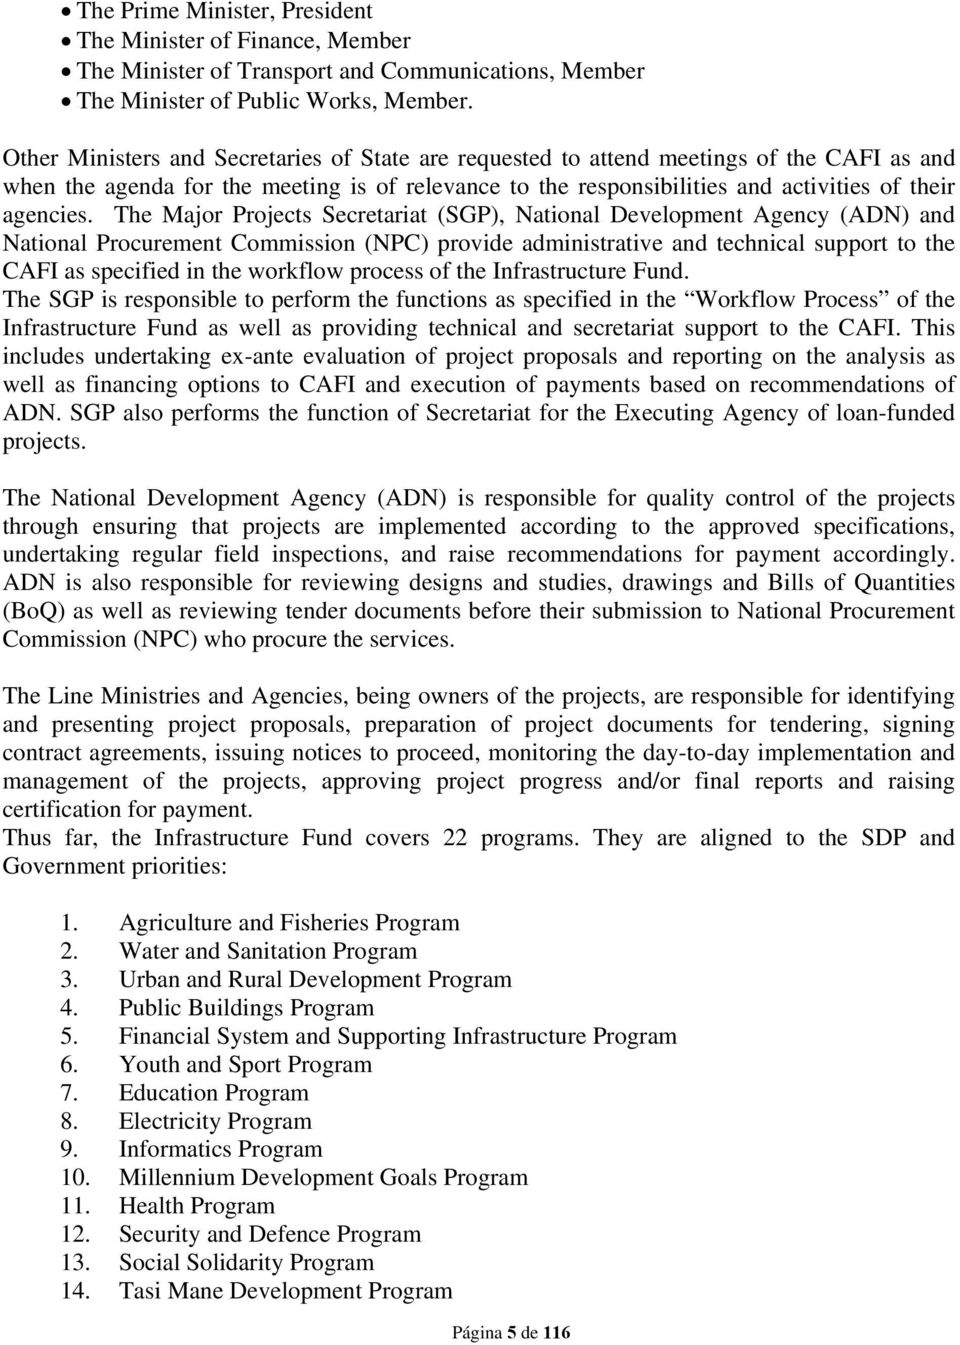 The Major Projects Secretariat (SGP), National Development Agency (ADN) and National Procurement Commission (NPC) provide administrative and technical support to the CAFI as specified in the workflow